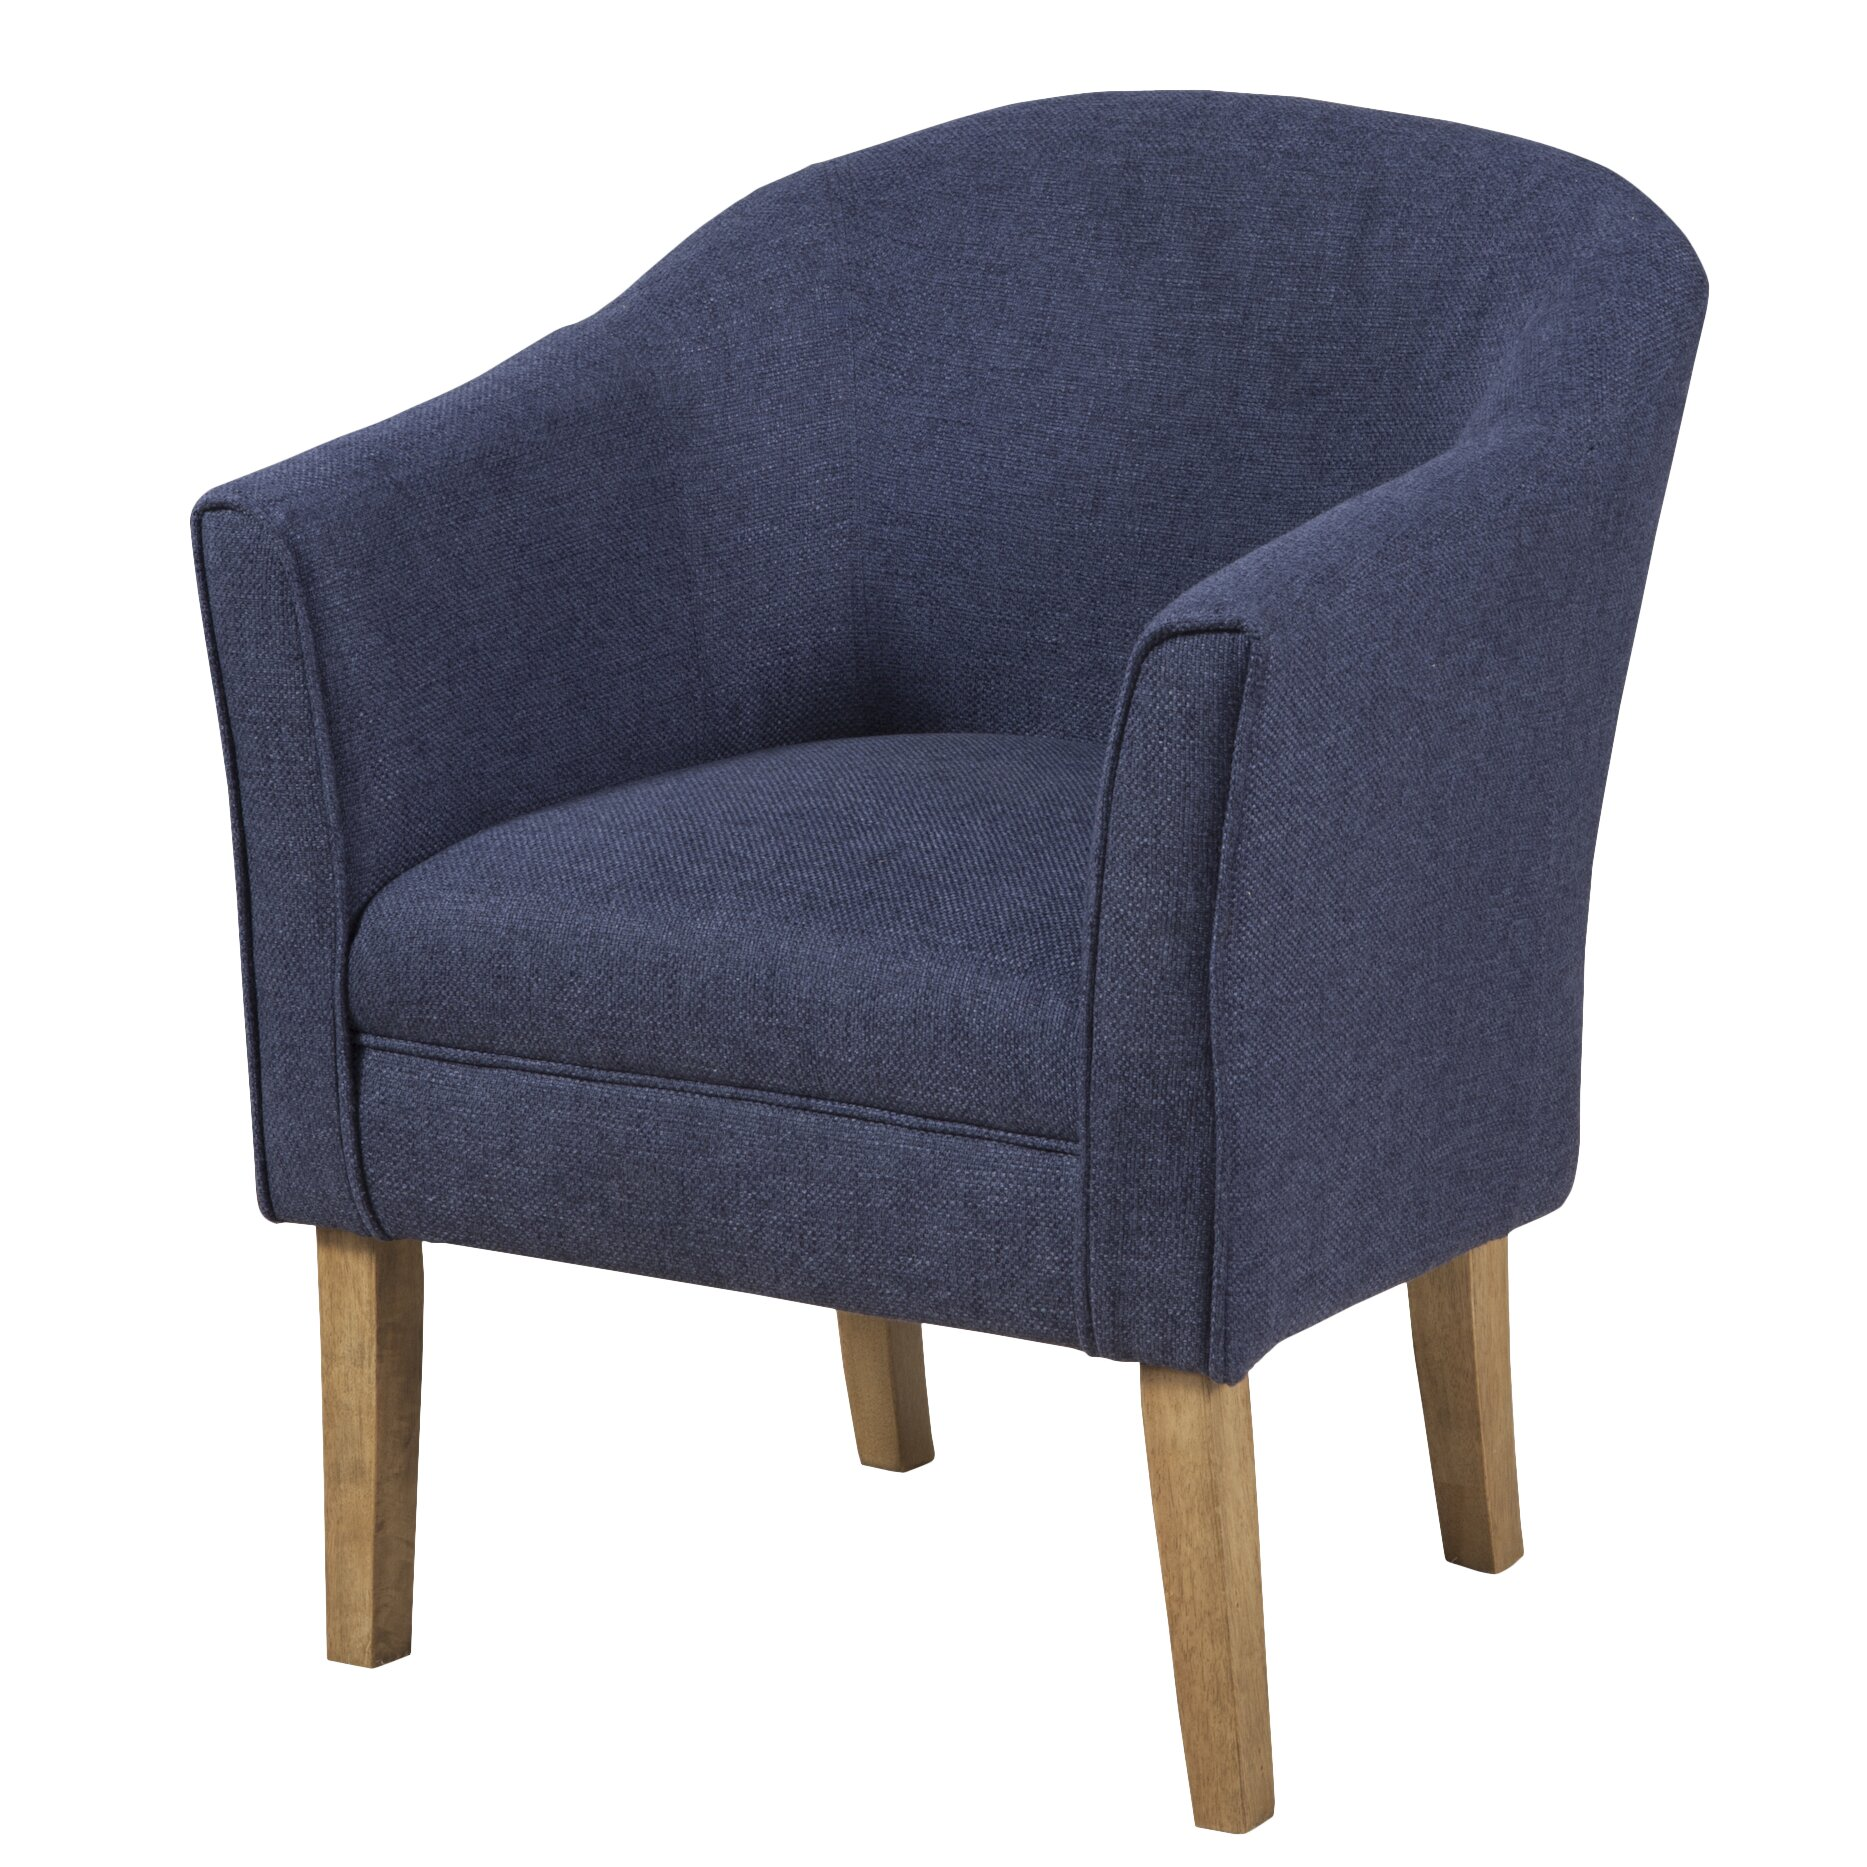 HomePop Upholstered Barrel Chair & Reviews